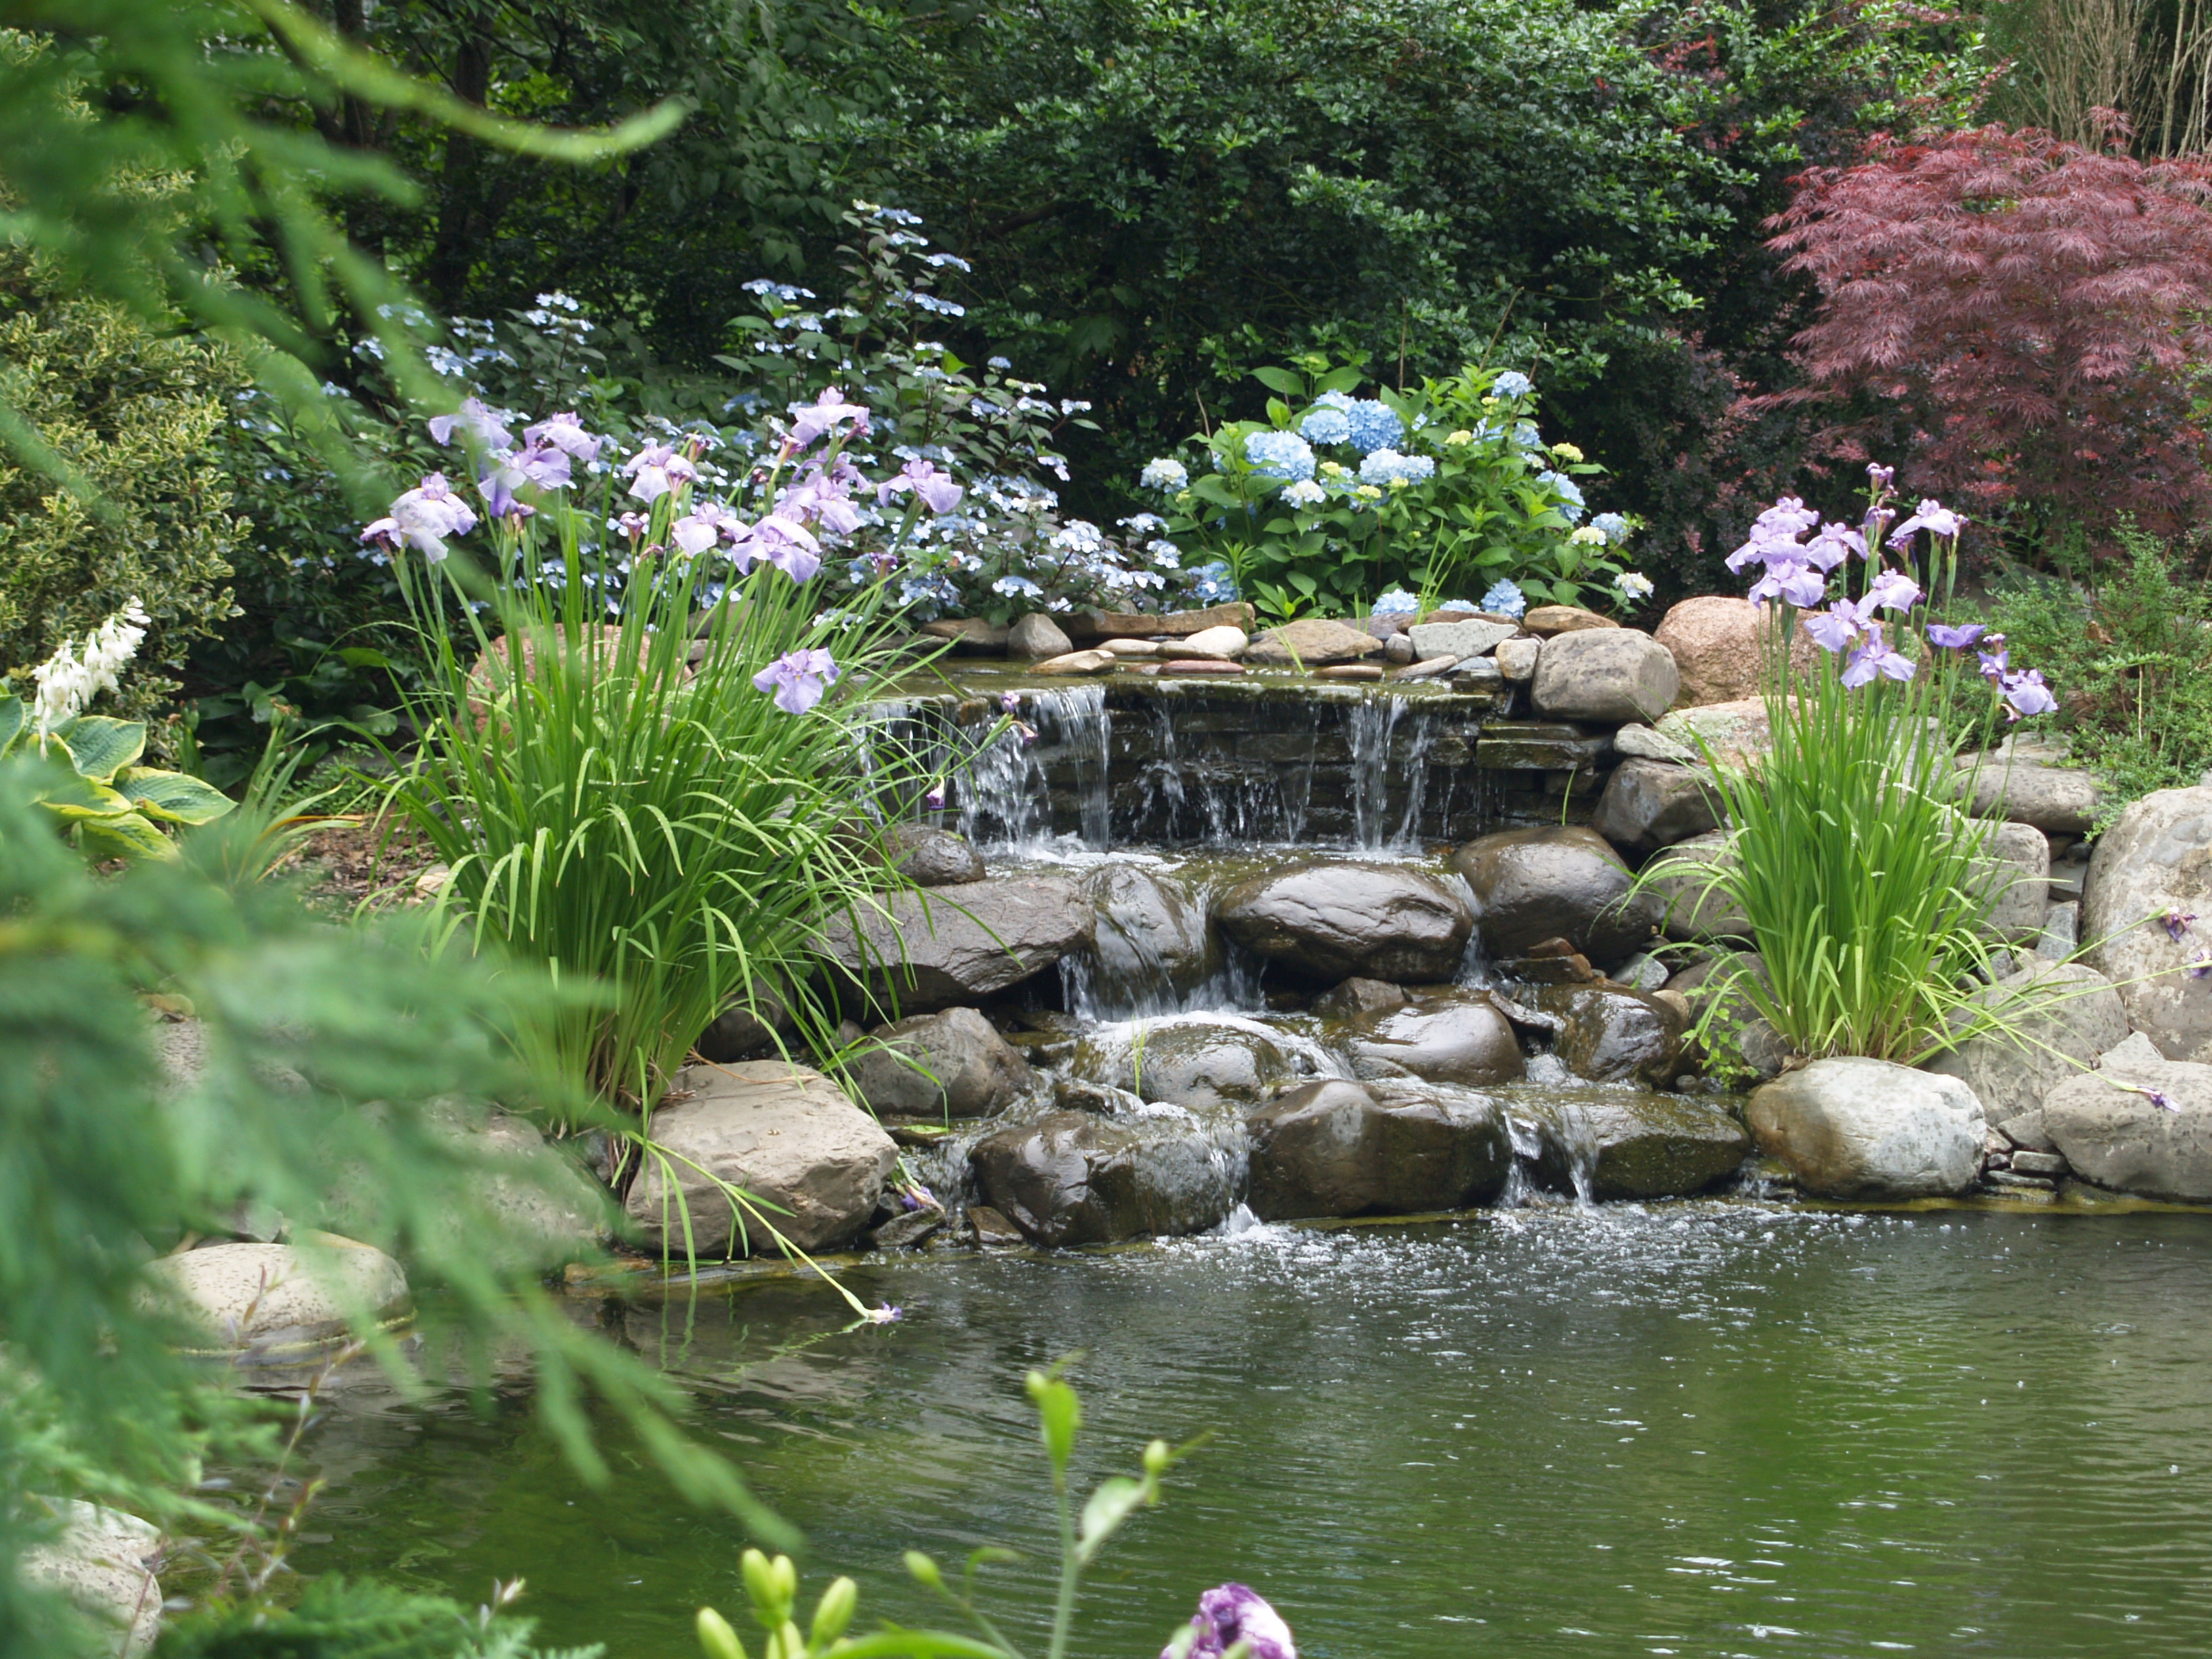 Our solutions to pond pump issues backyard blessings - Piante decorative da giardino ...